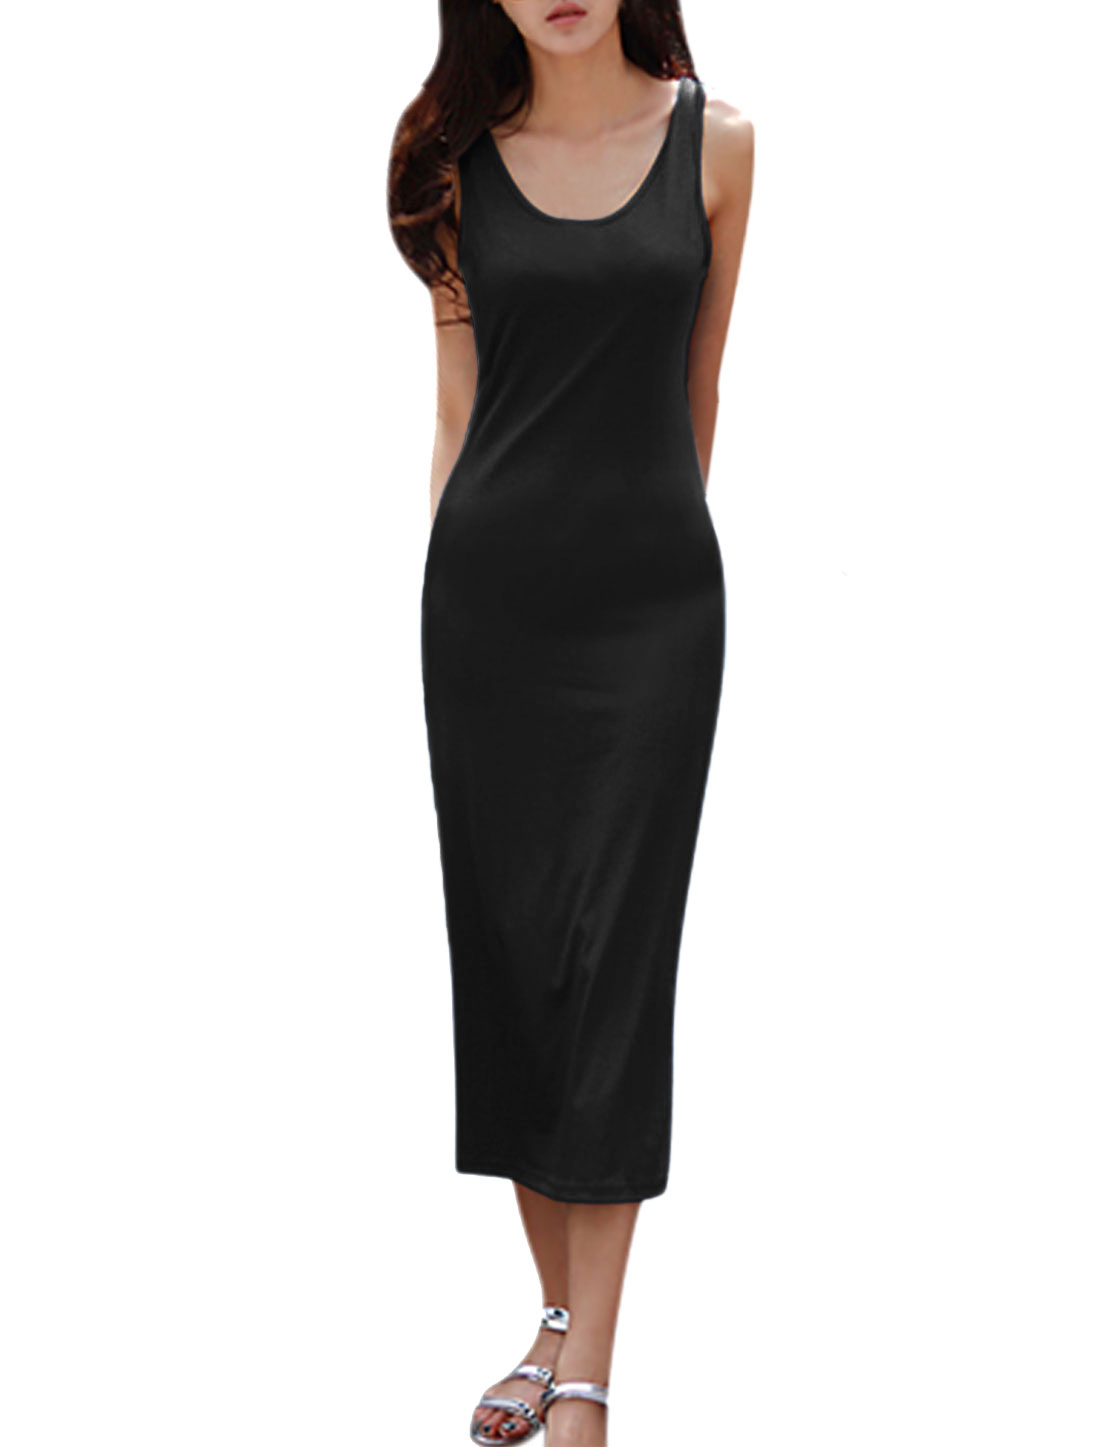 Women Sleeveless Scoop Neck Unlined Slim Fit Midi Dress Black M